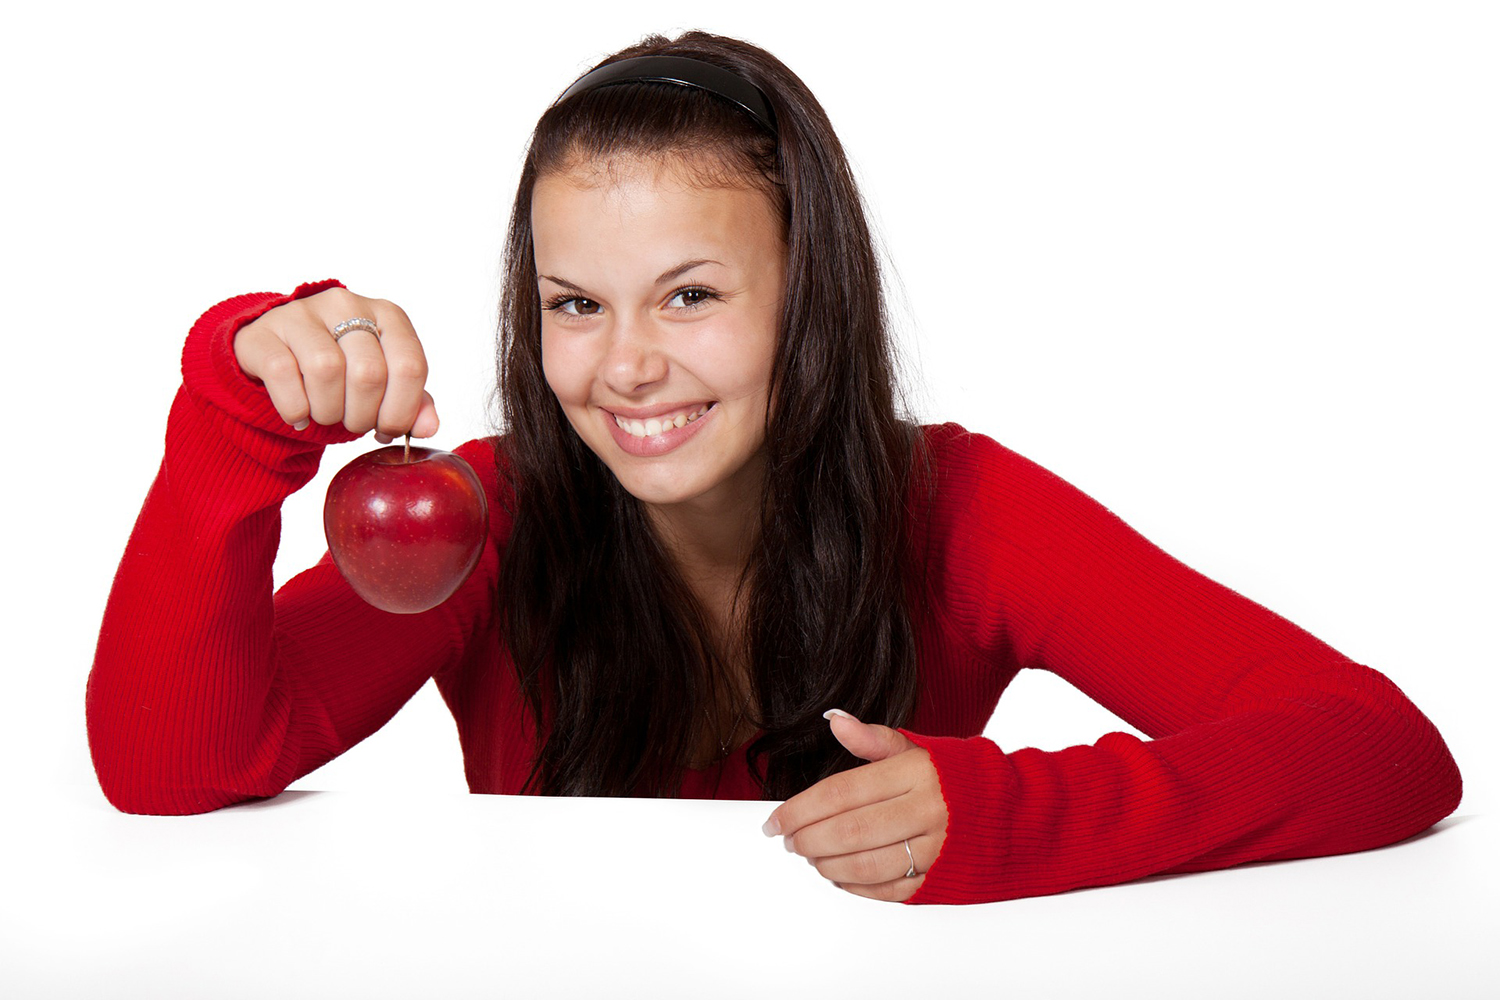 Smiling Beautiful Woman Holding Red Apple